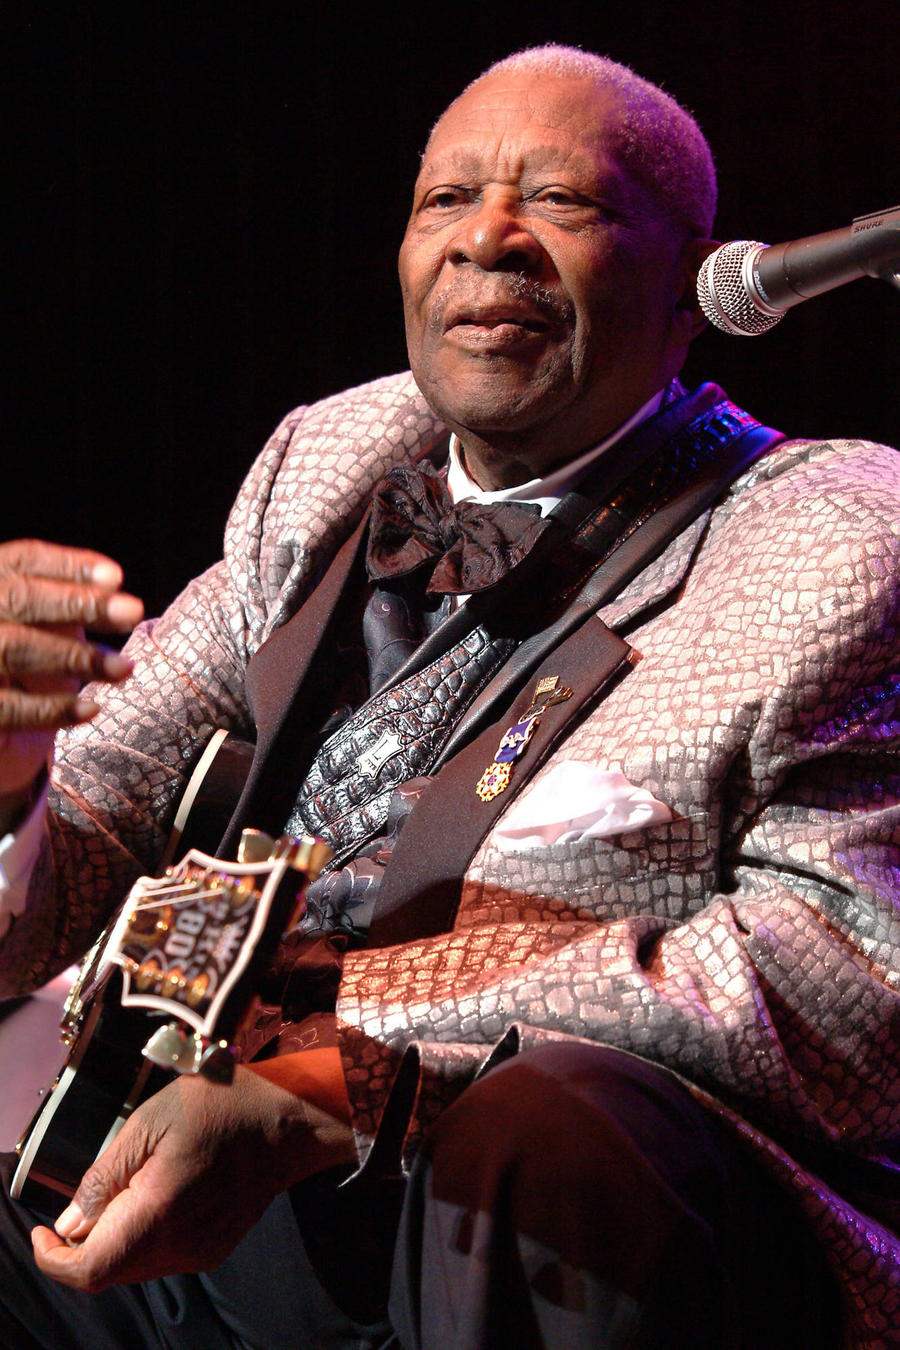 Photographer Suing B.b. King's Estate Over Pictures